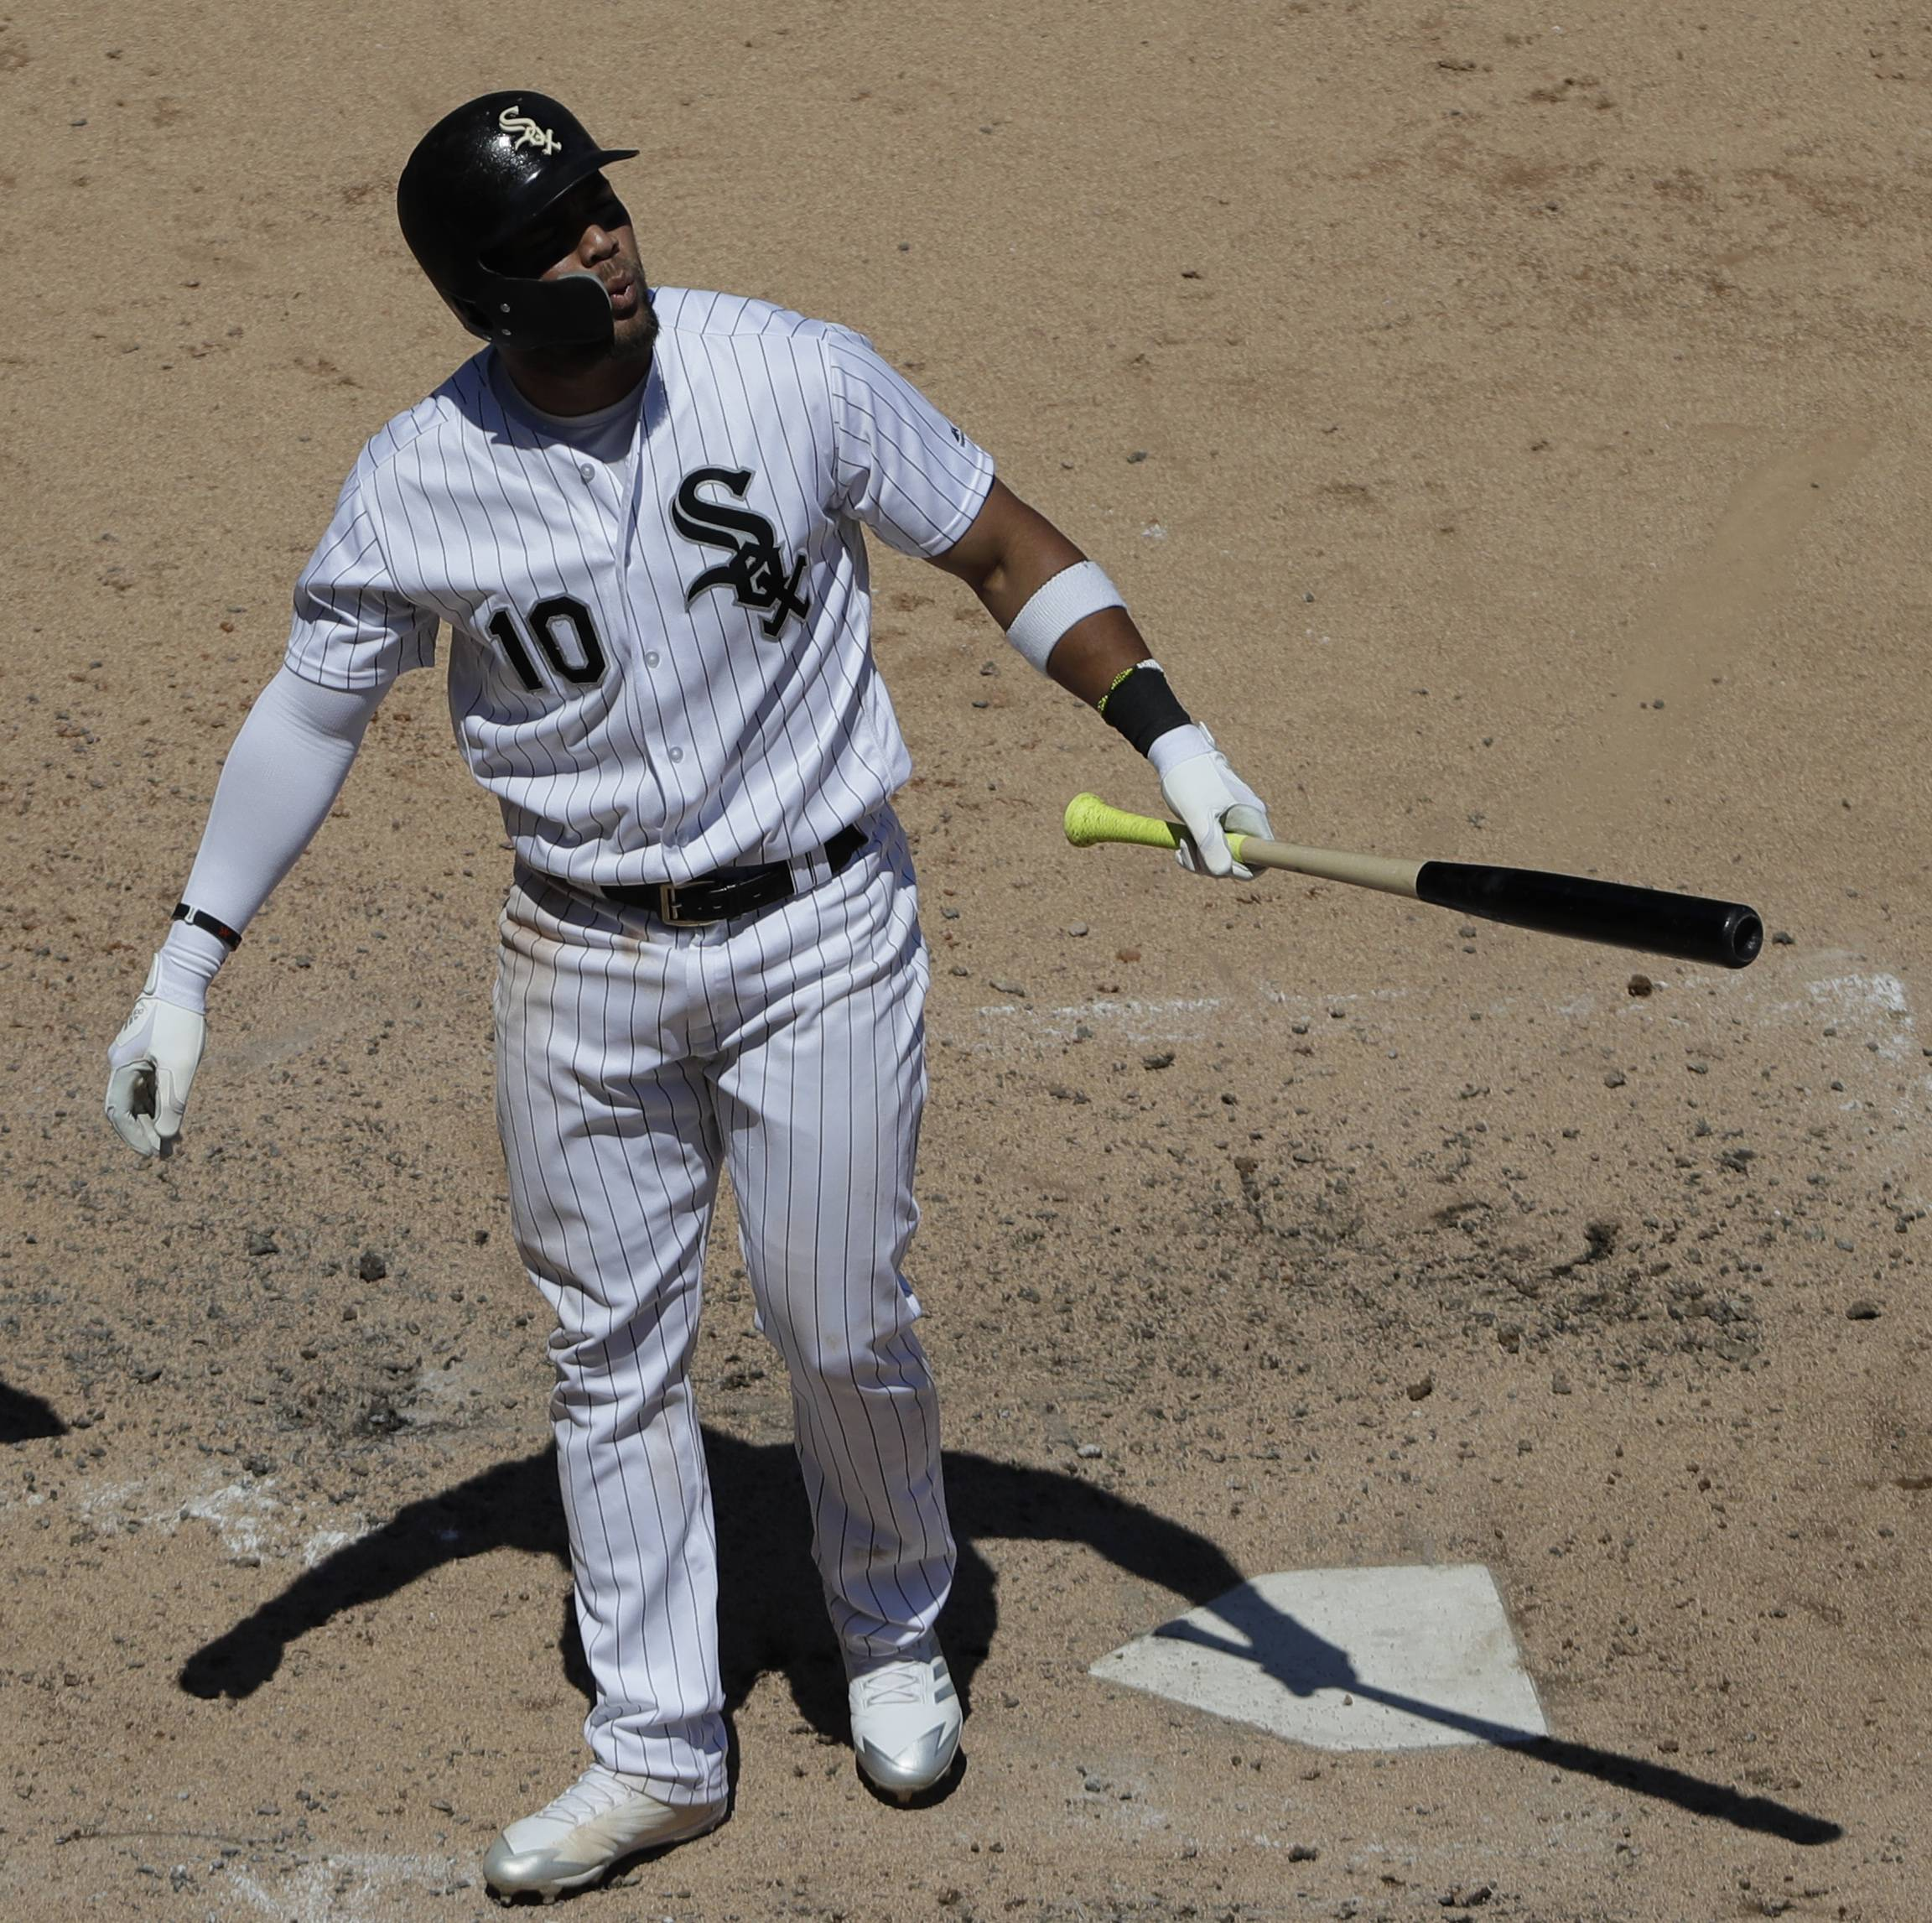 Chicago White Sox's Yoan Moncada reacts after being called out on strikes during the fourth inning of a baseball game against the Oakland Athletics, Saturday, June 23, 2018, in Chicago. (AP Photo/Nam Y. Huh)